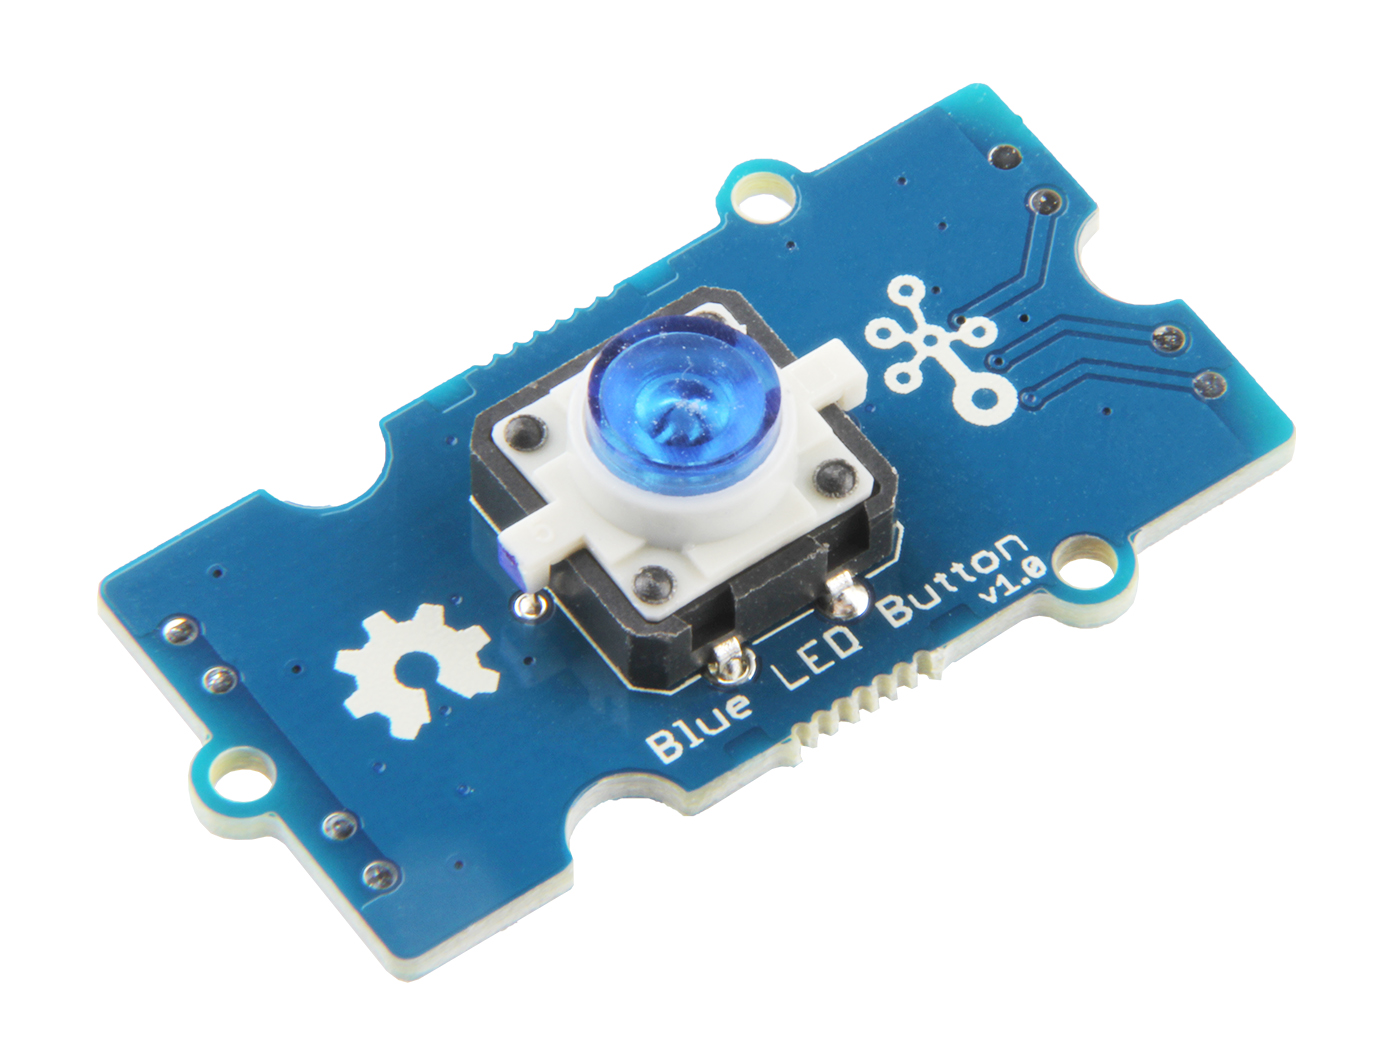 grove button seeed studiogrove blue led button